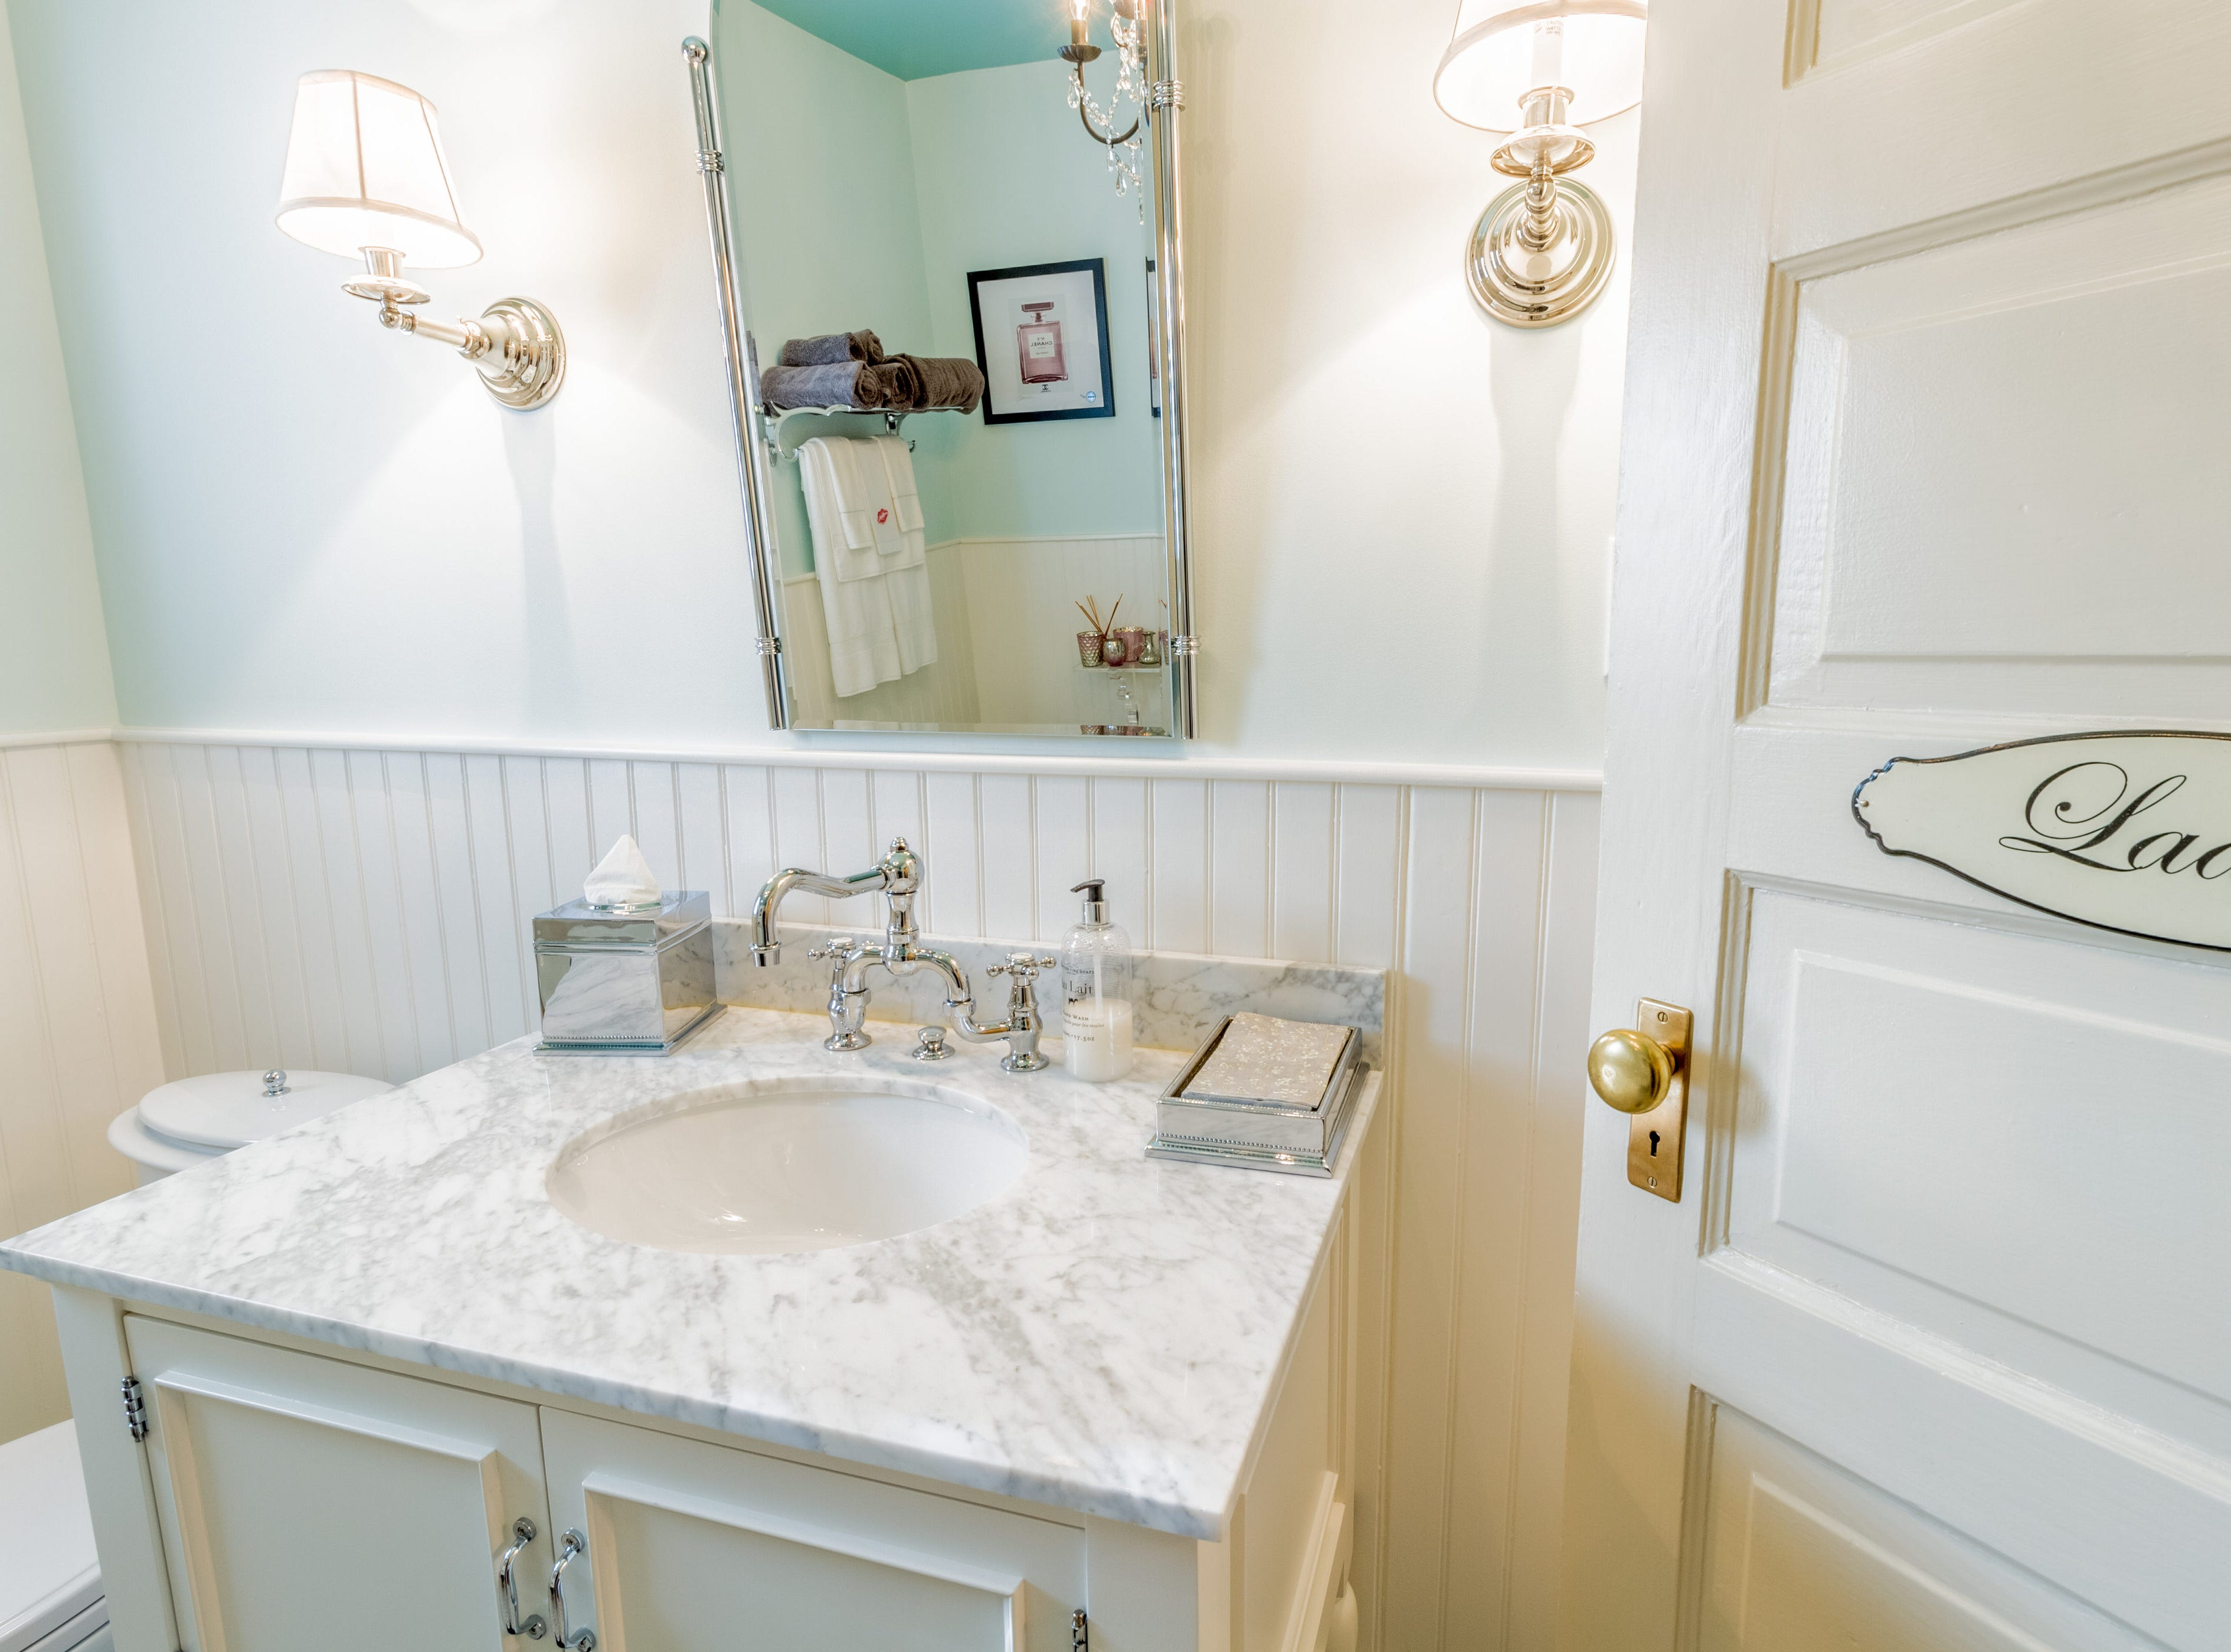 The hall bath at 1100 N. Rodney St. has a clawfoot tub and a marble-topped vanity.